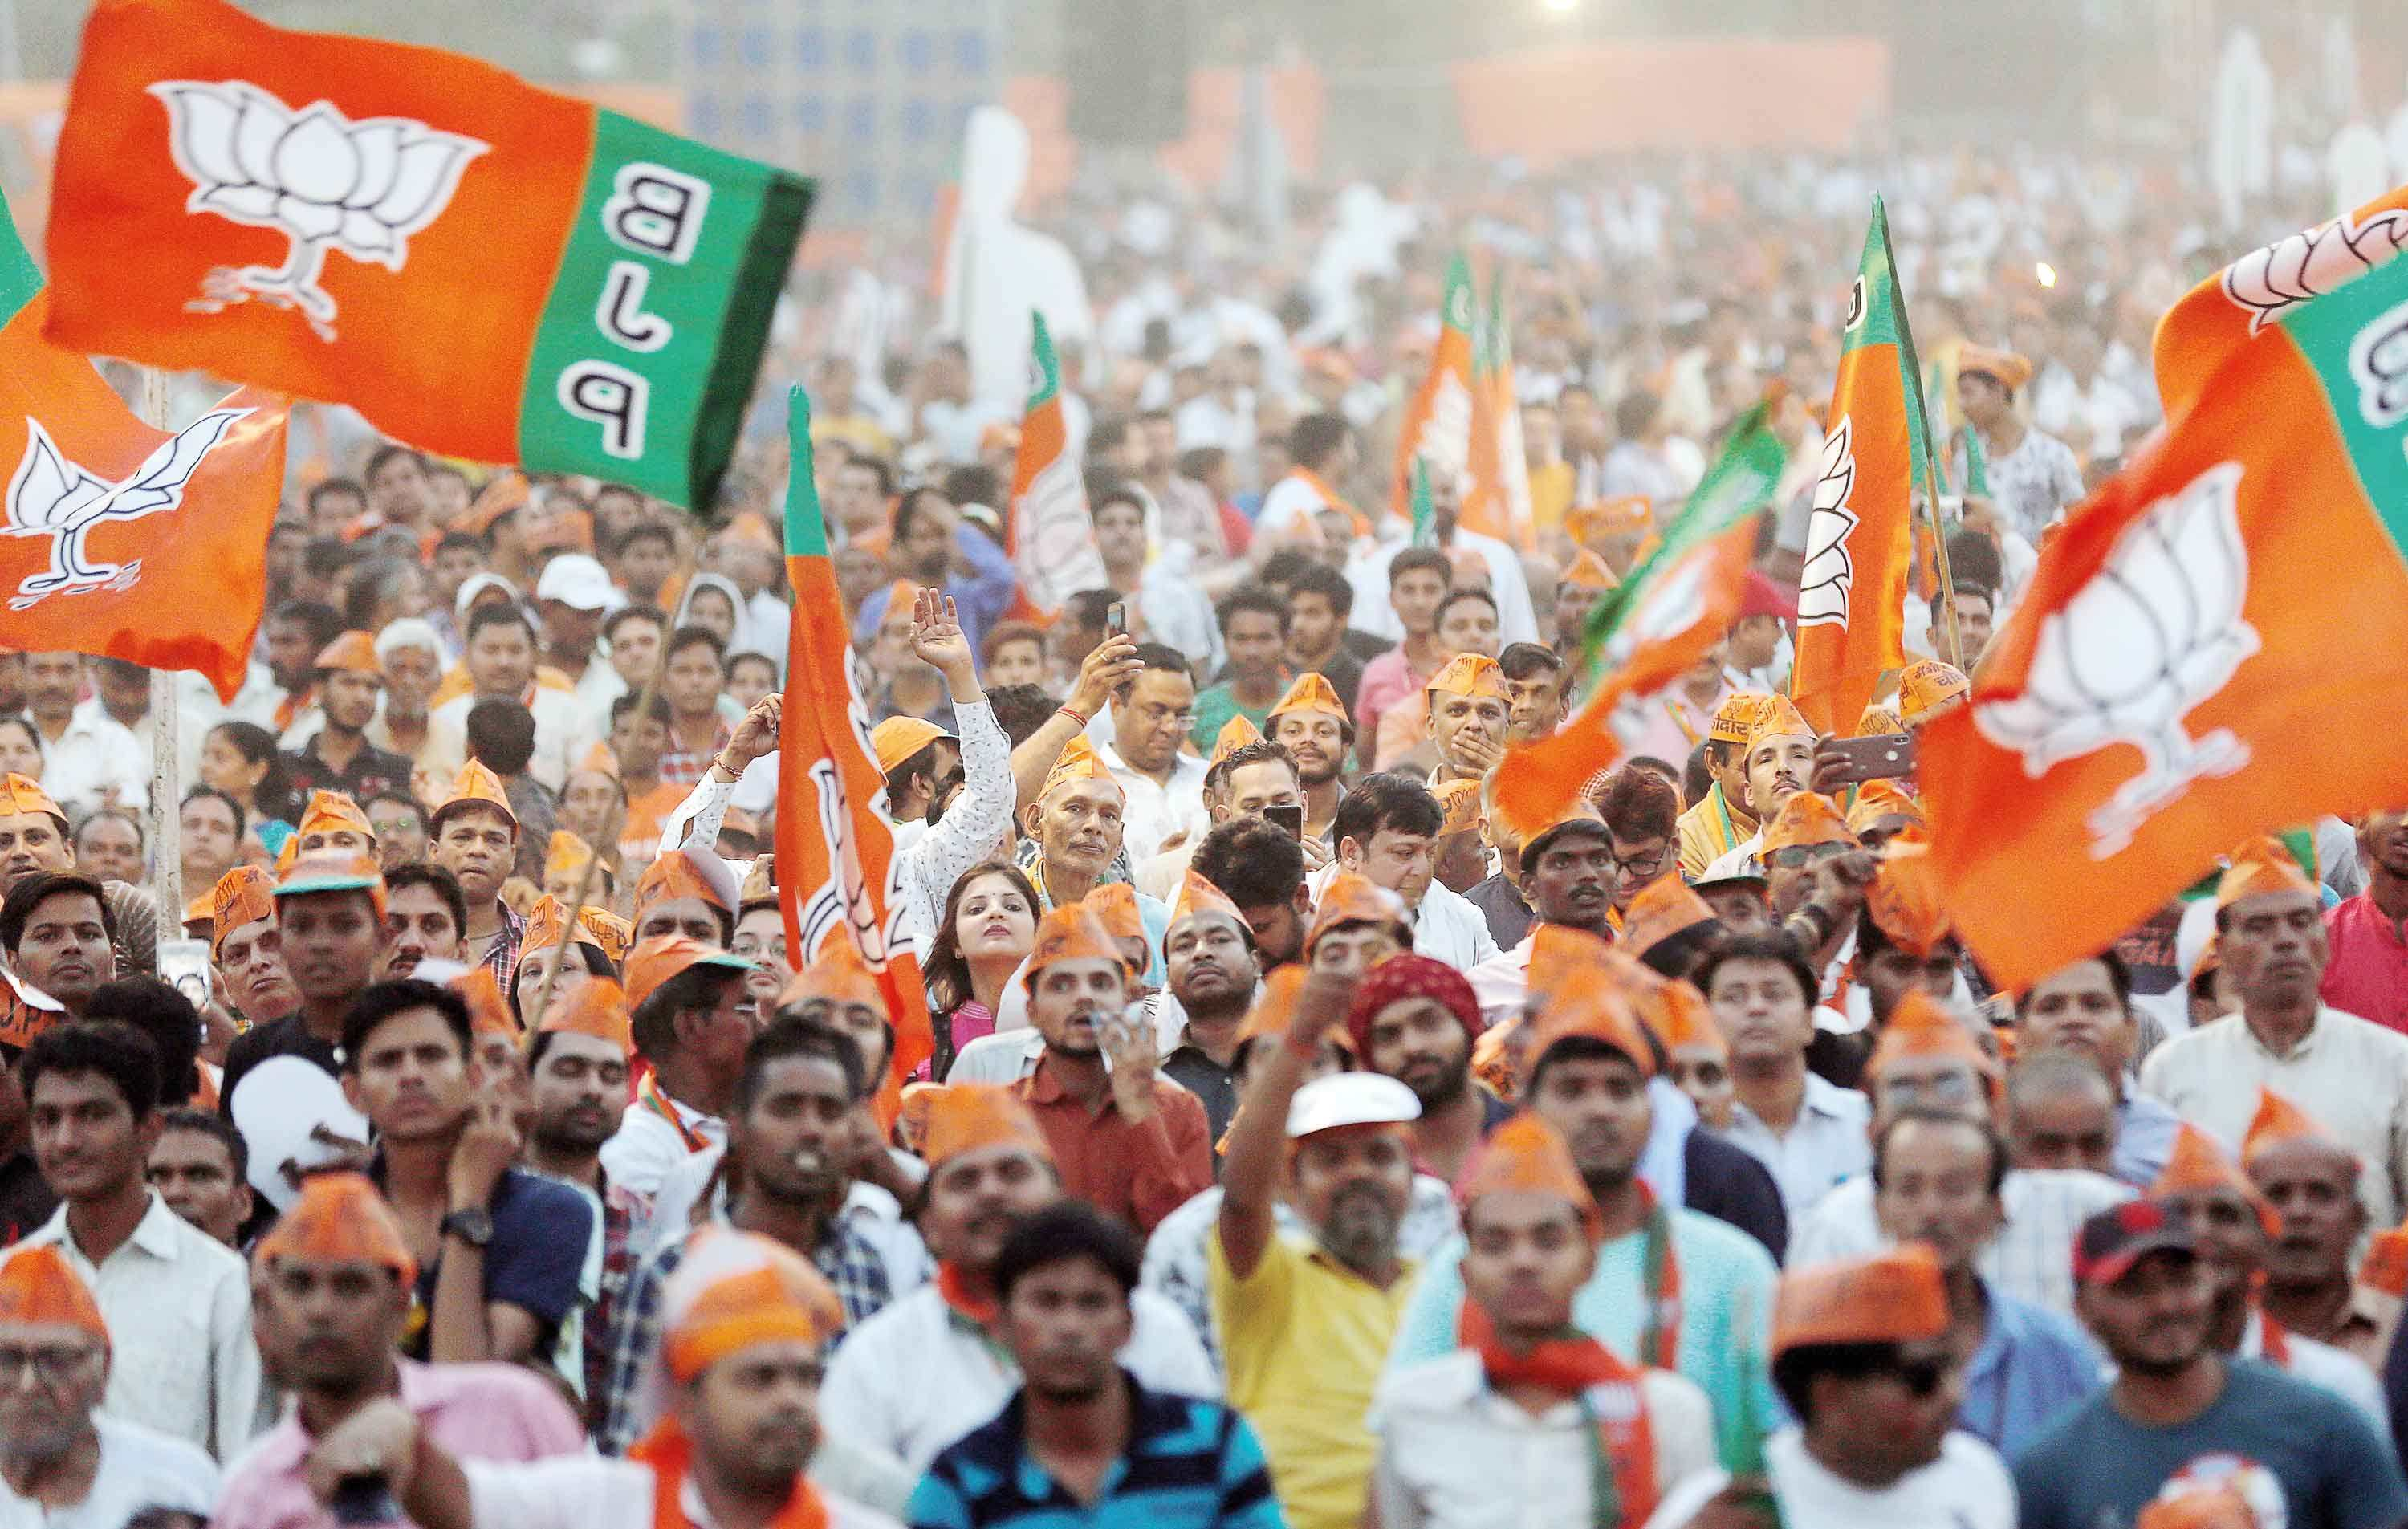 BJP-TMC clash during pro-CAA rally in West Bengal